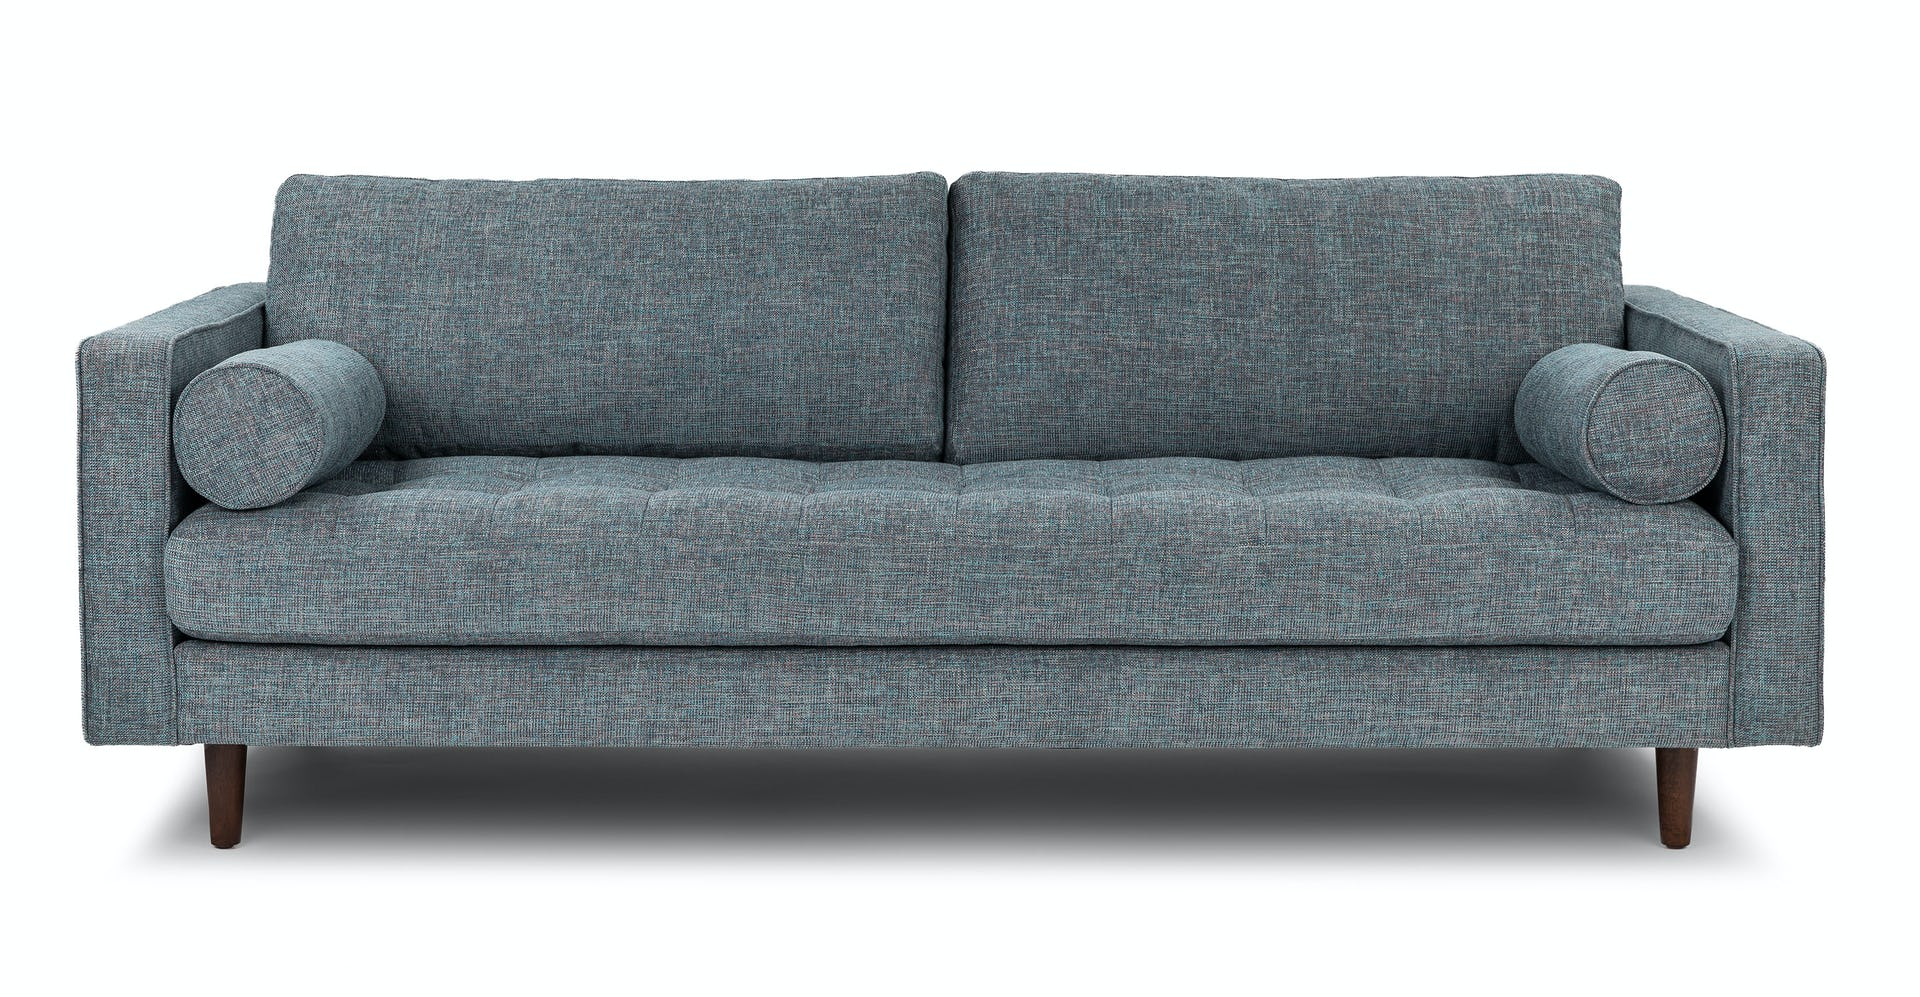 Aqua Tweed Sven Fabric Walnut 3 Seater